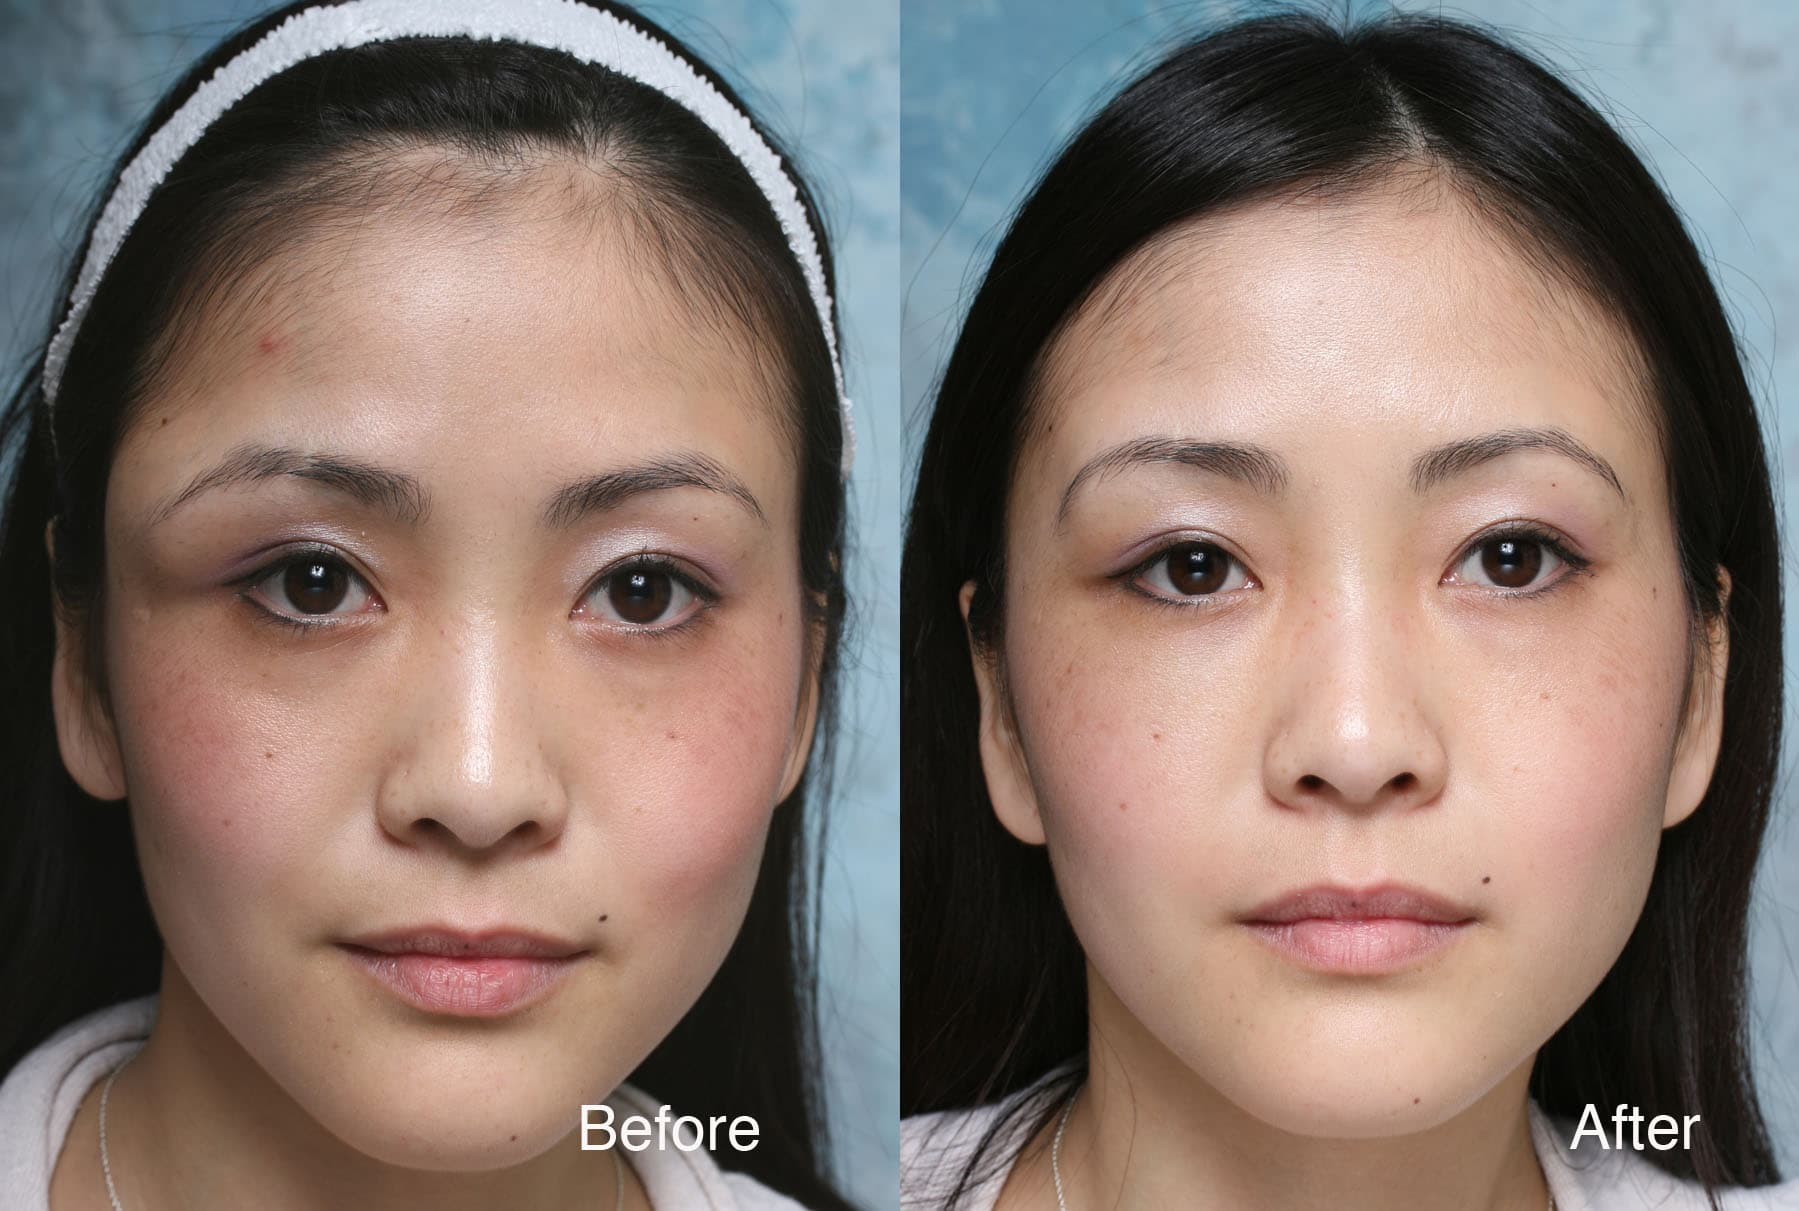 Plastic Surgery To Look Asian Before After photo - 1